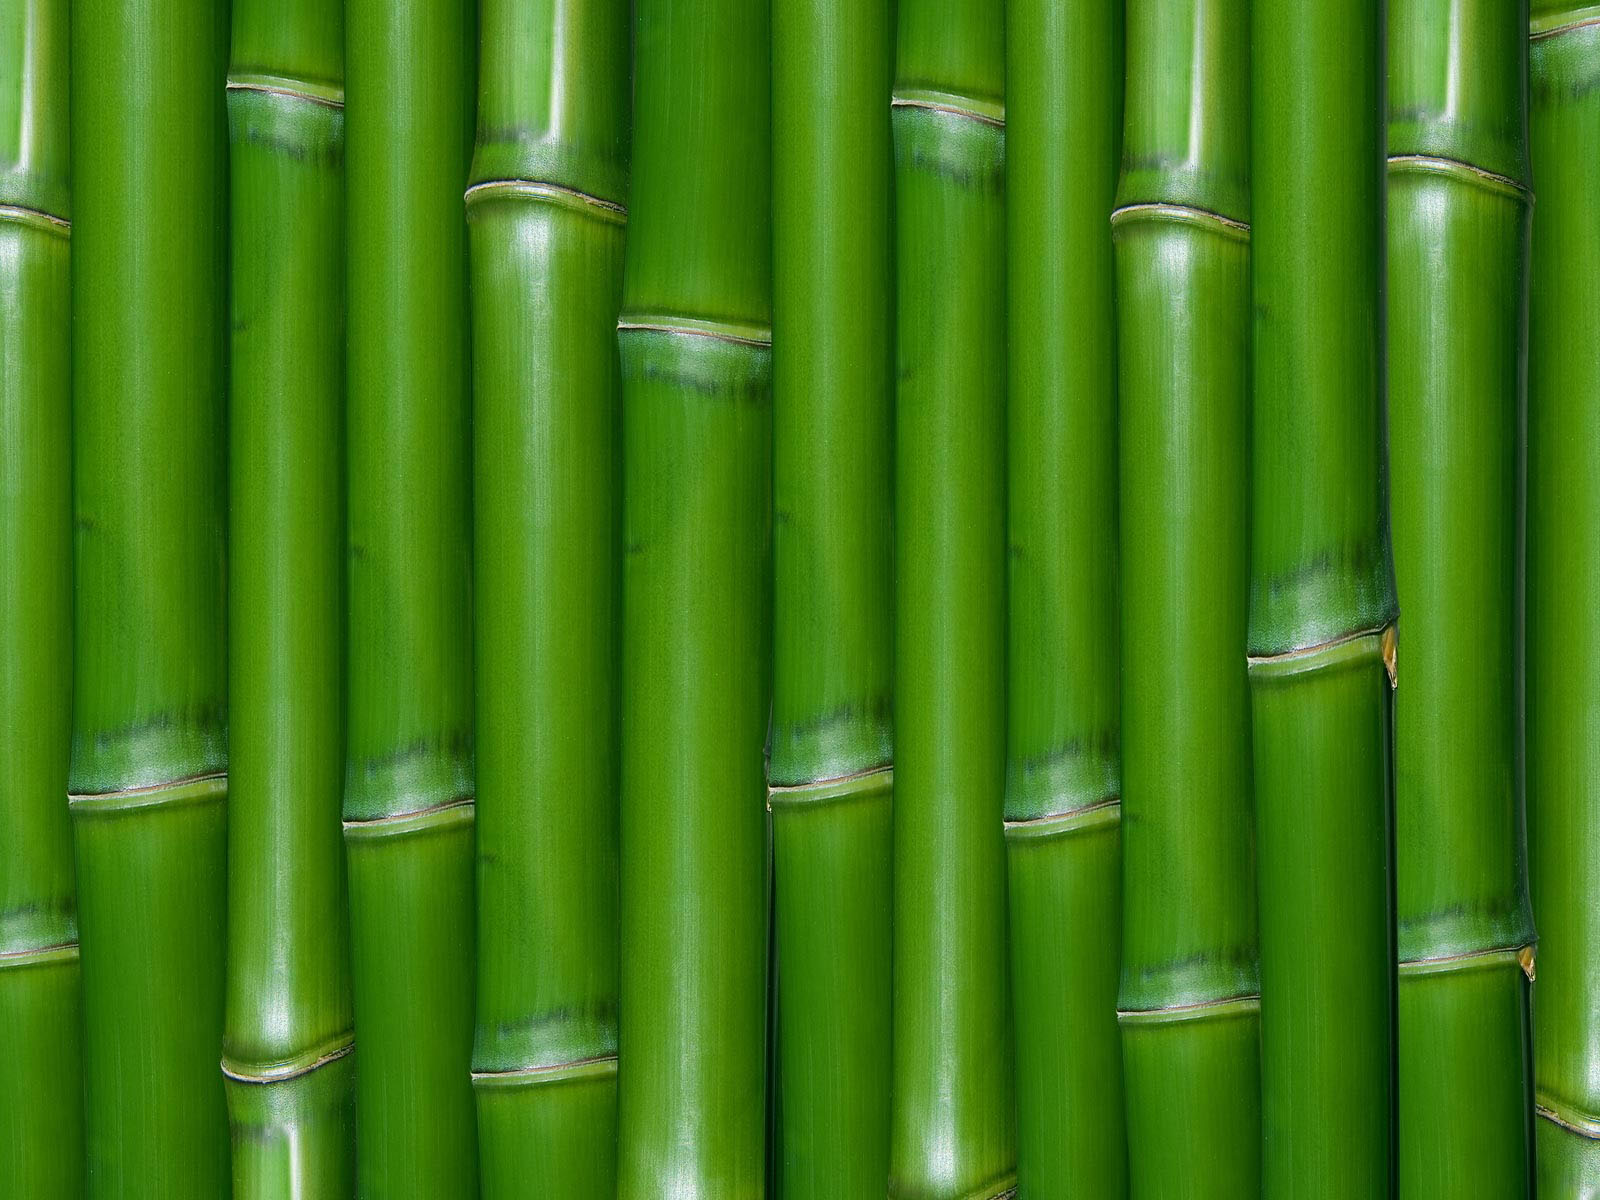 bamboo wallpaper by doantrangnguyen - photo #18